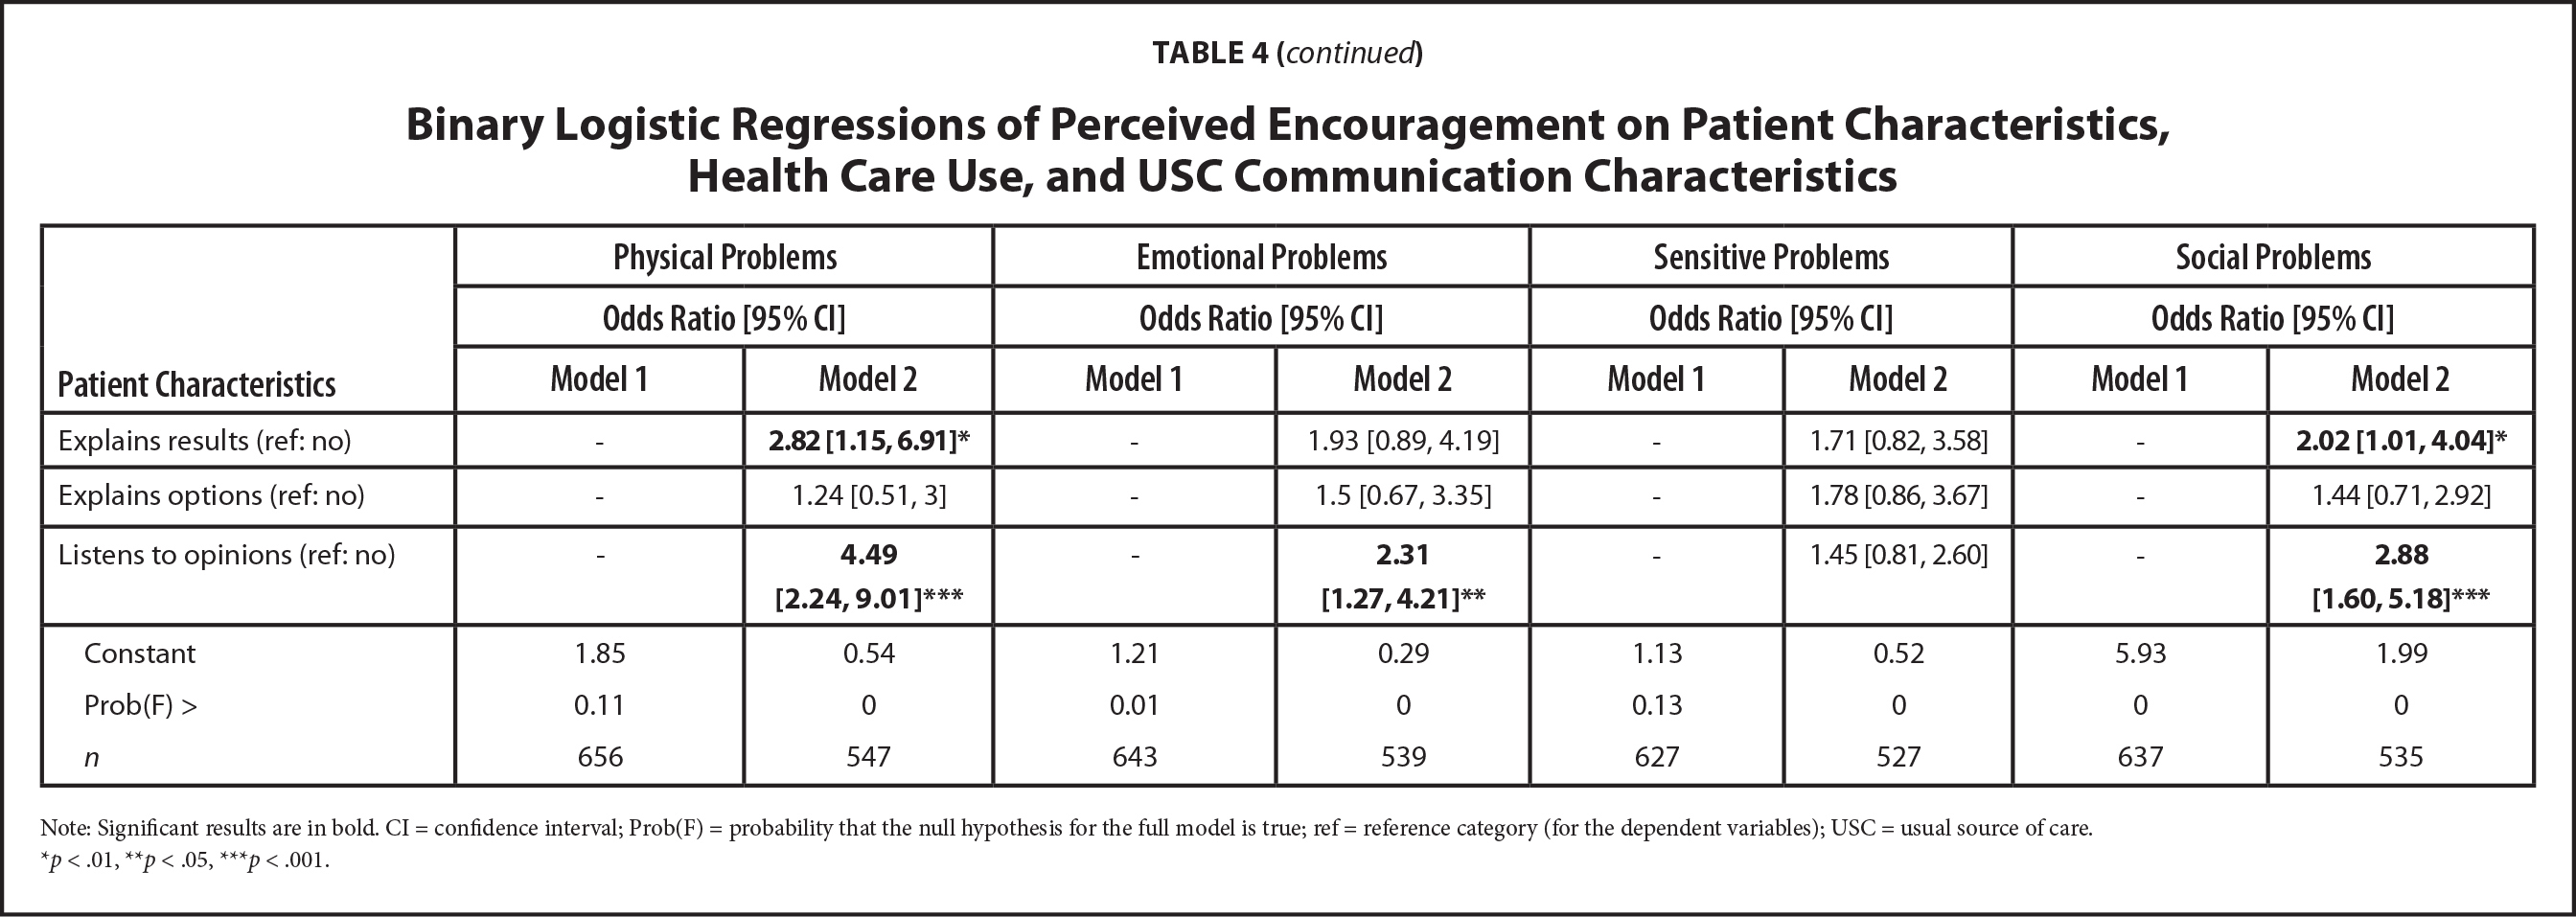 Binary Logistic Regressions of Perceived Encouragement on Patient Characteristics, Health Care Use, and USC Communication Characteristics